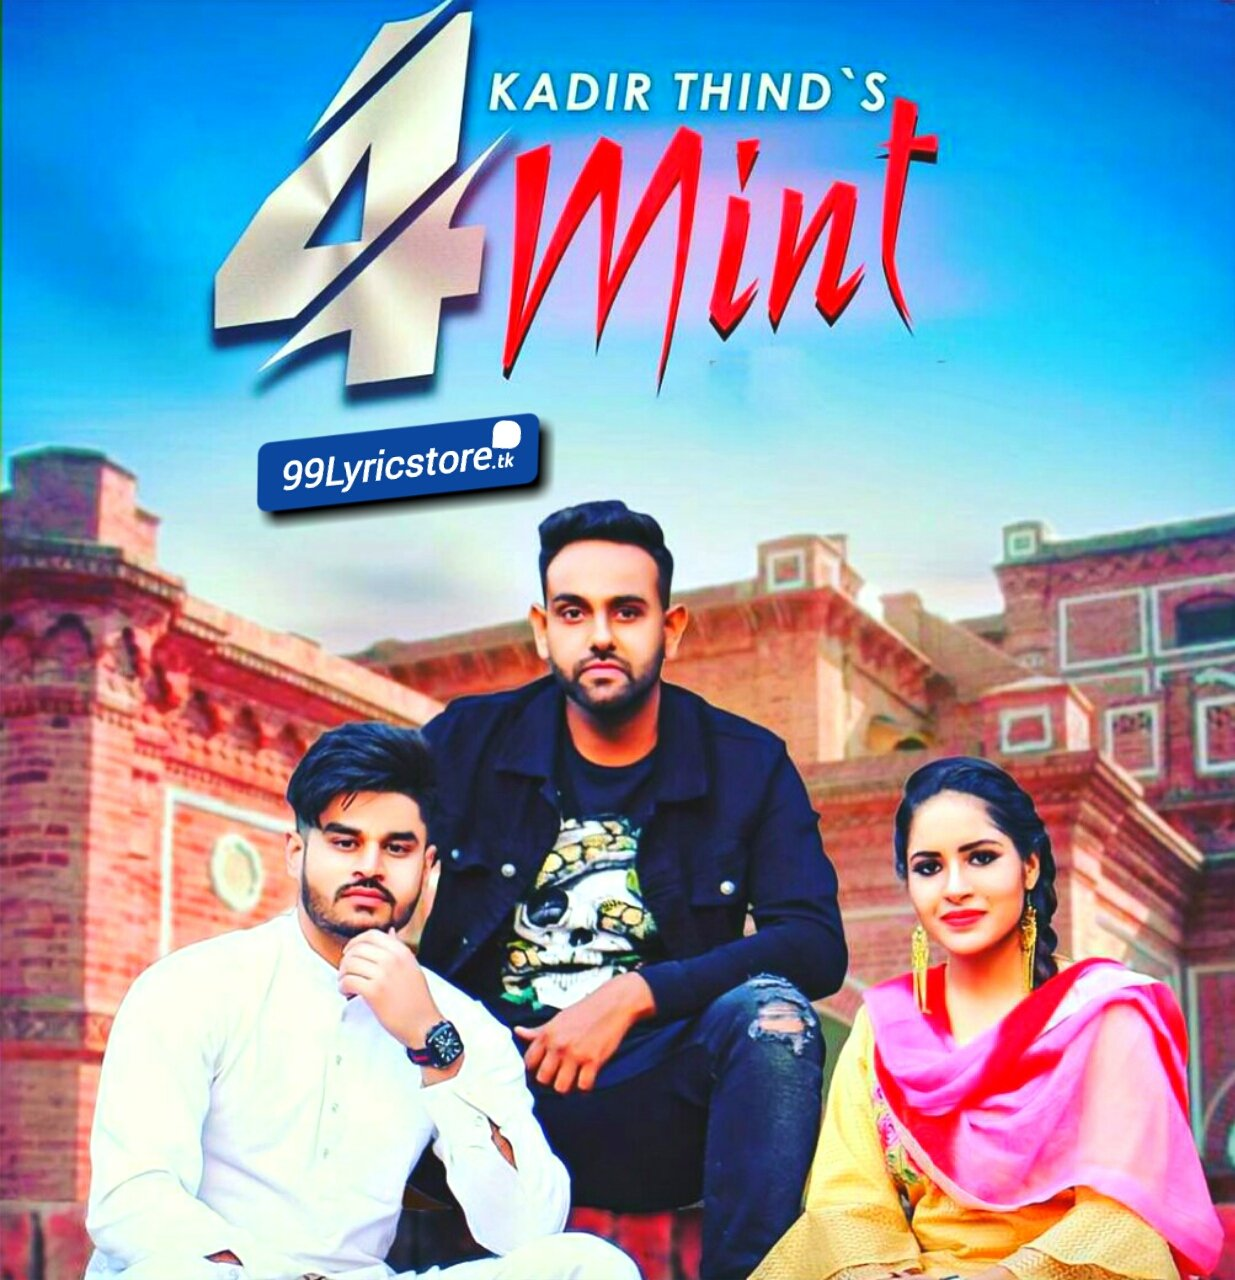 Latest Punjabi Song 4 Mint Lyrics Sung By Kadir Thind